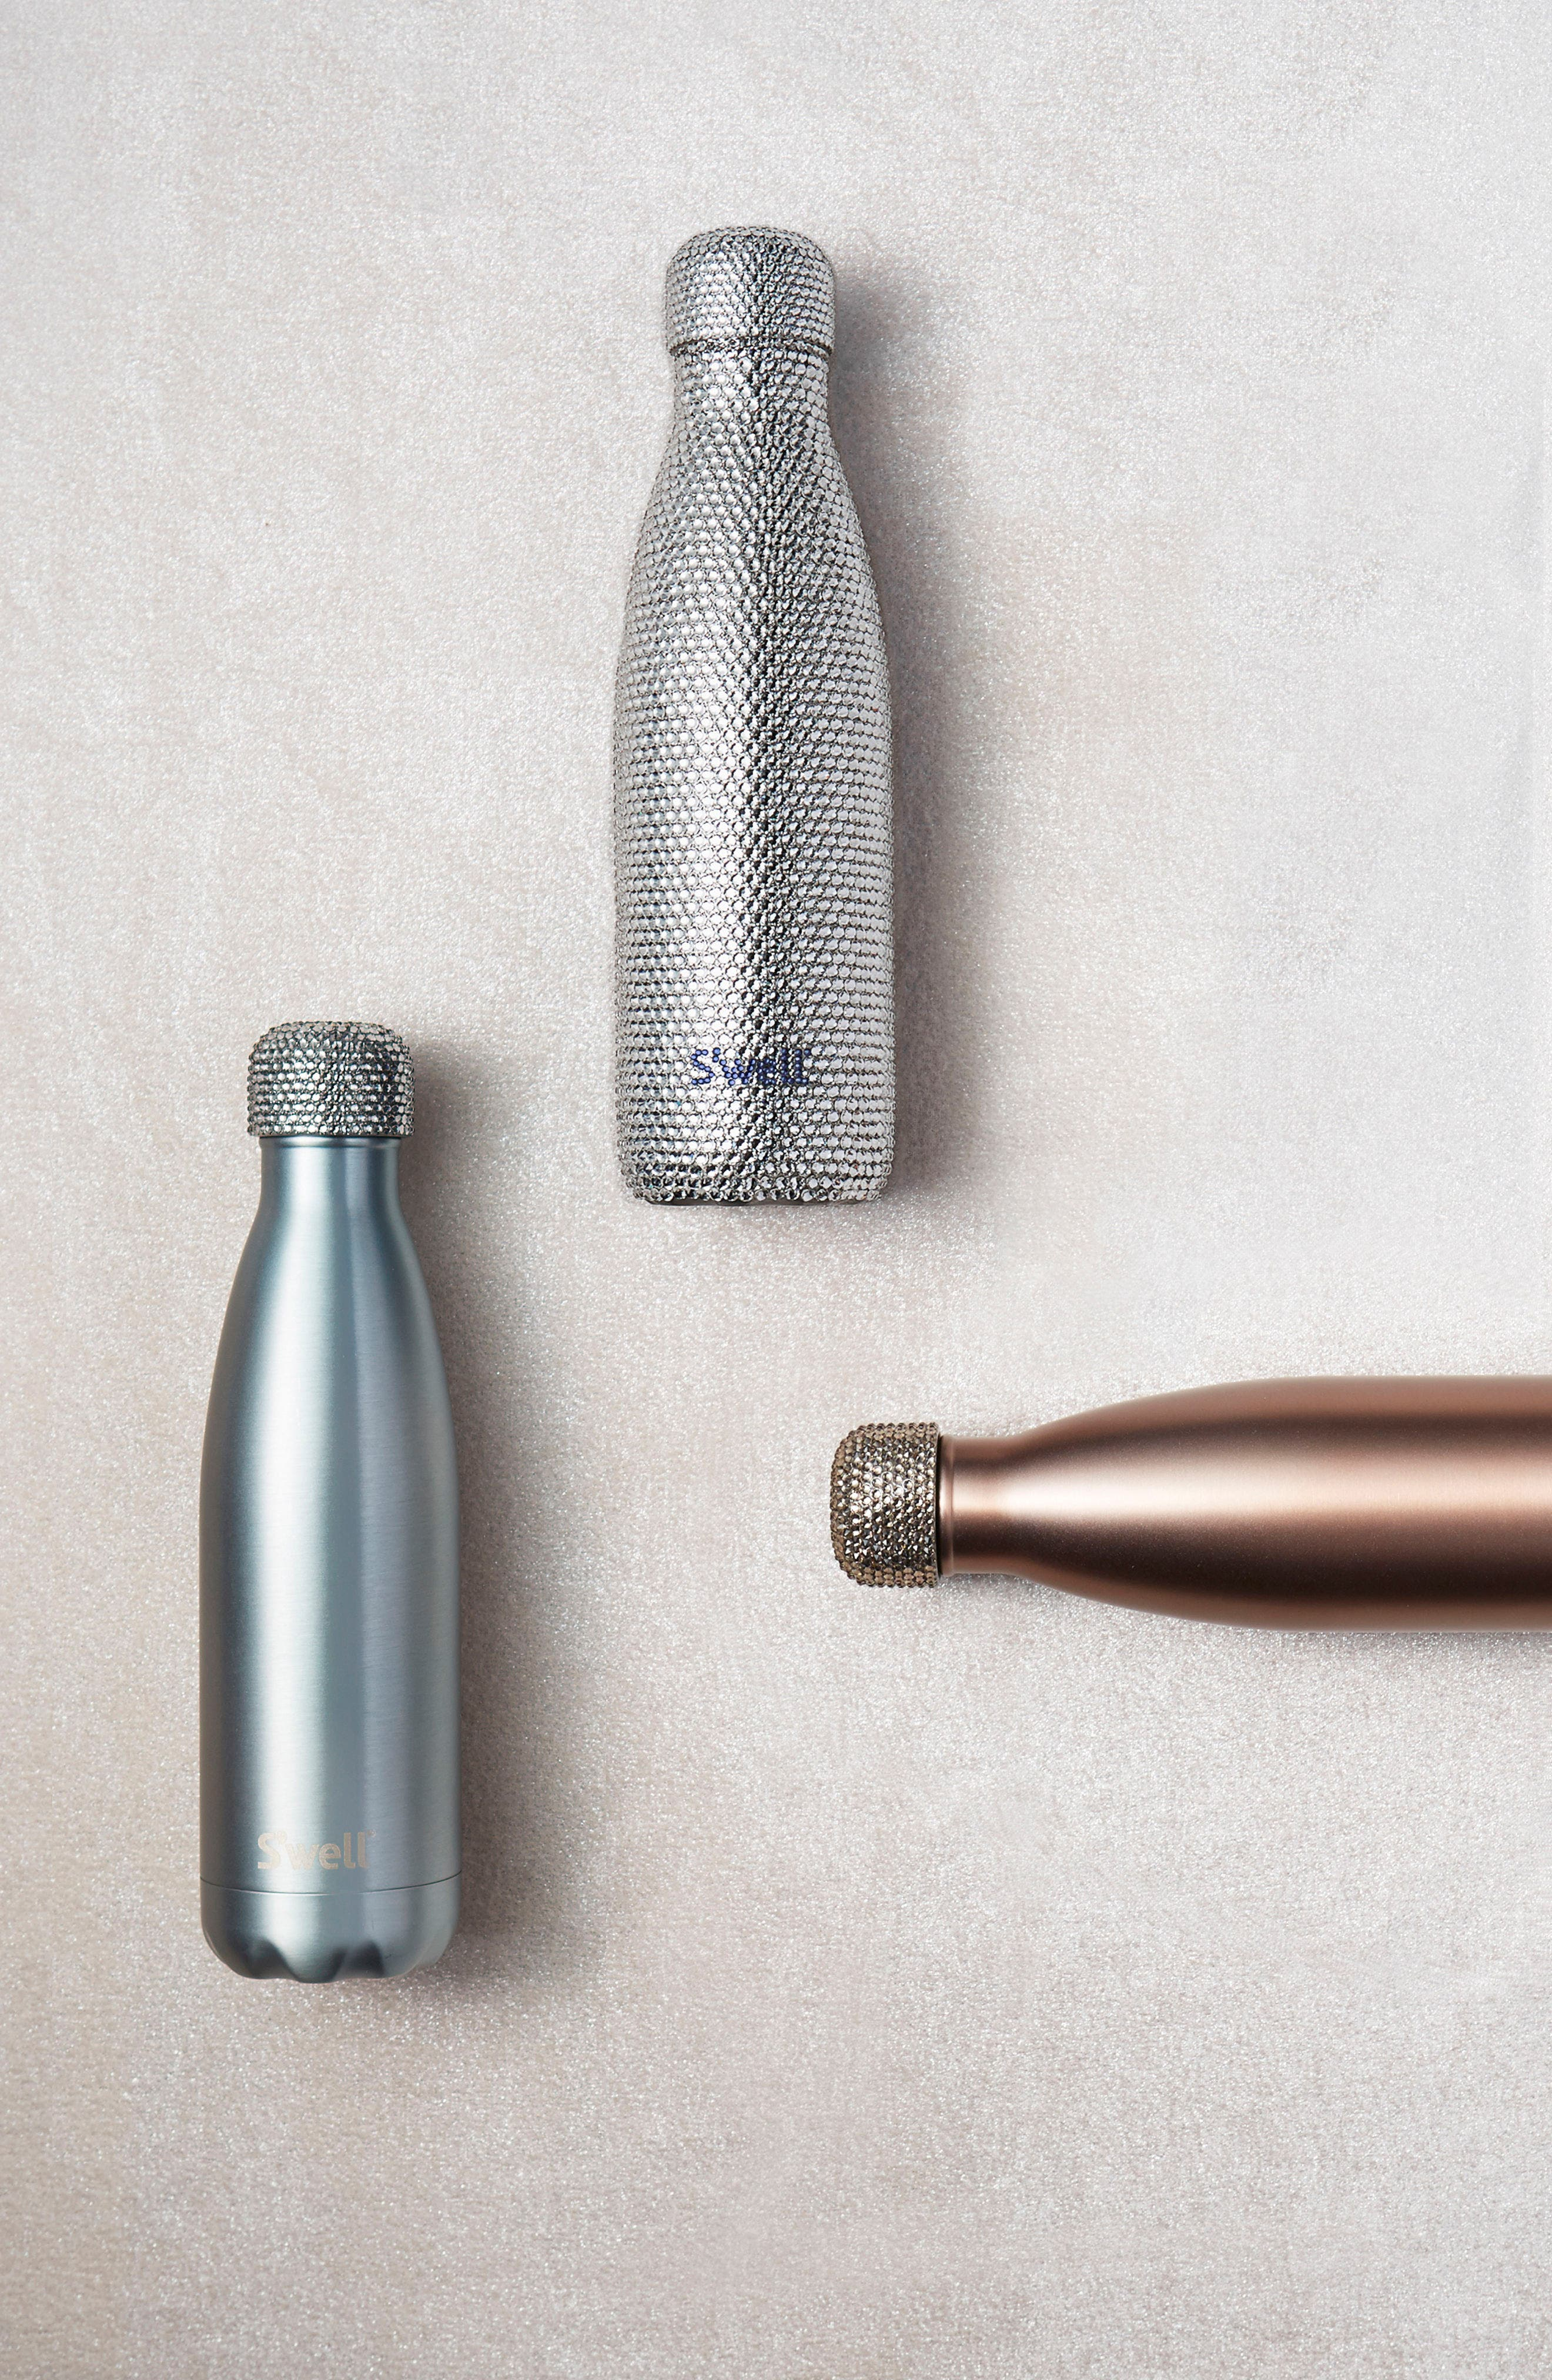 Alternate Image 4  - S'well Alina Swarovski Crystal Insulated Stainless Steel Water Bottle (Limited Edition)